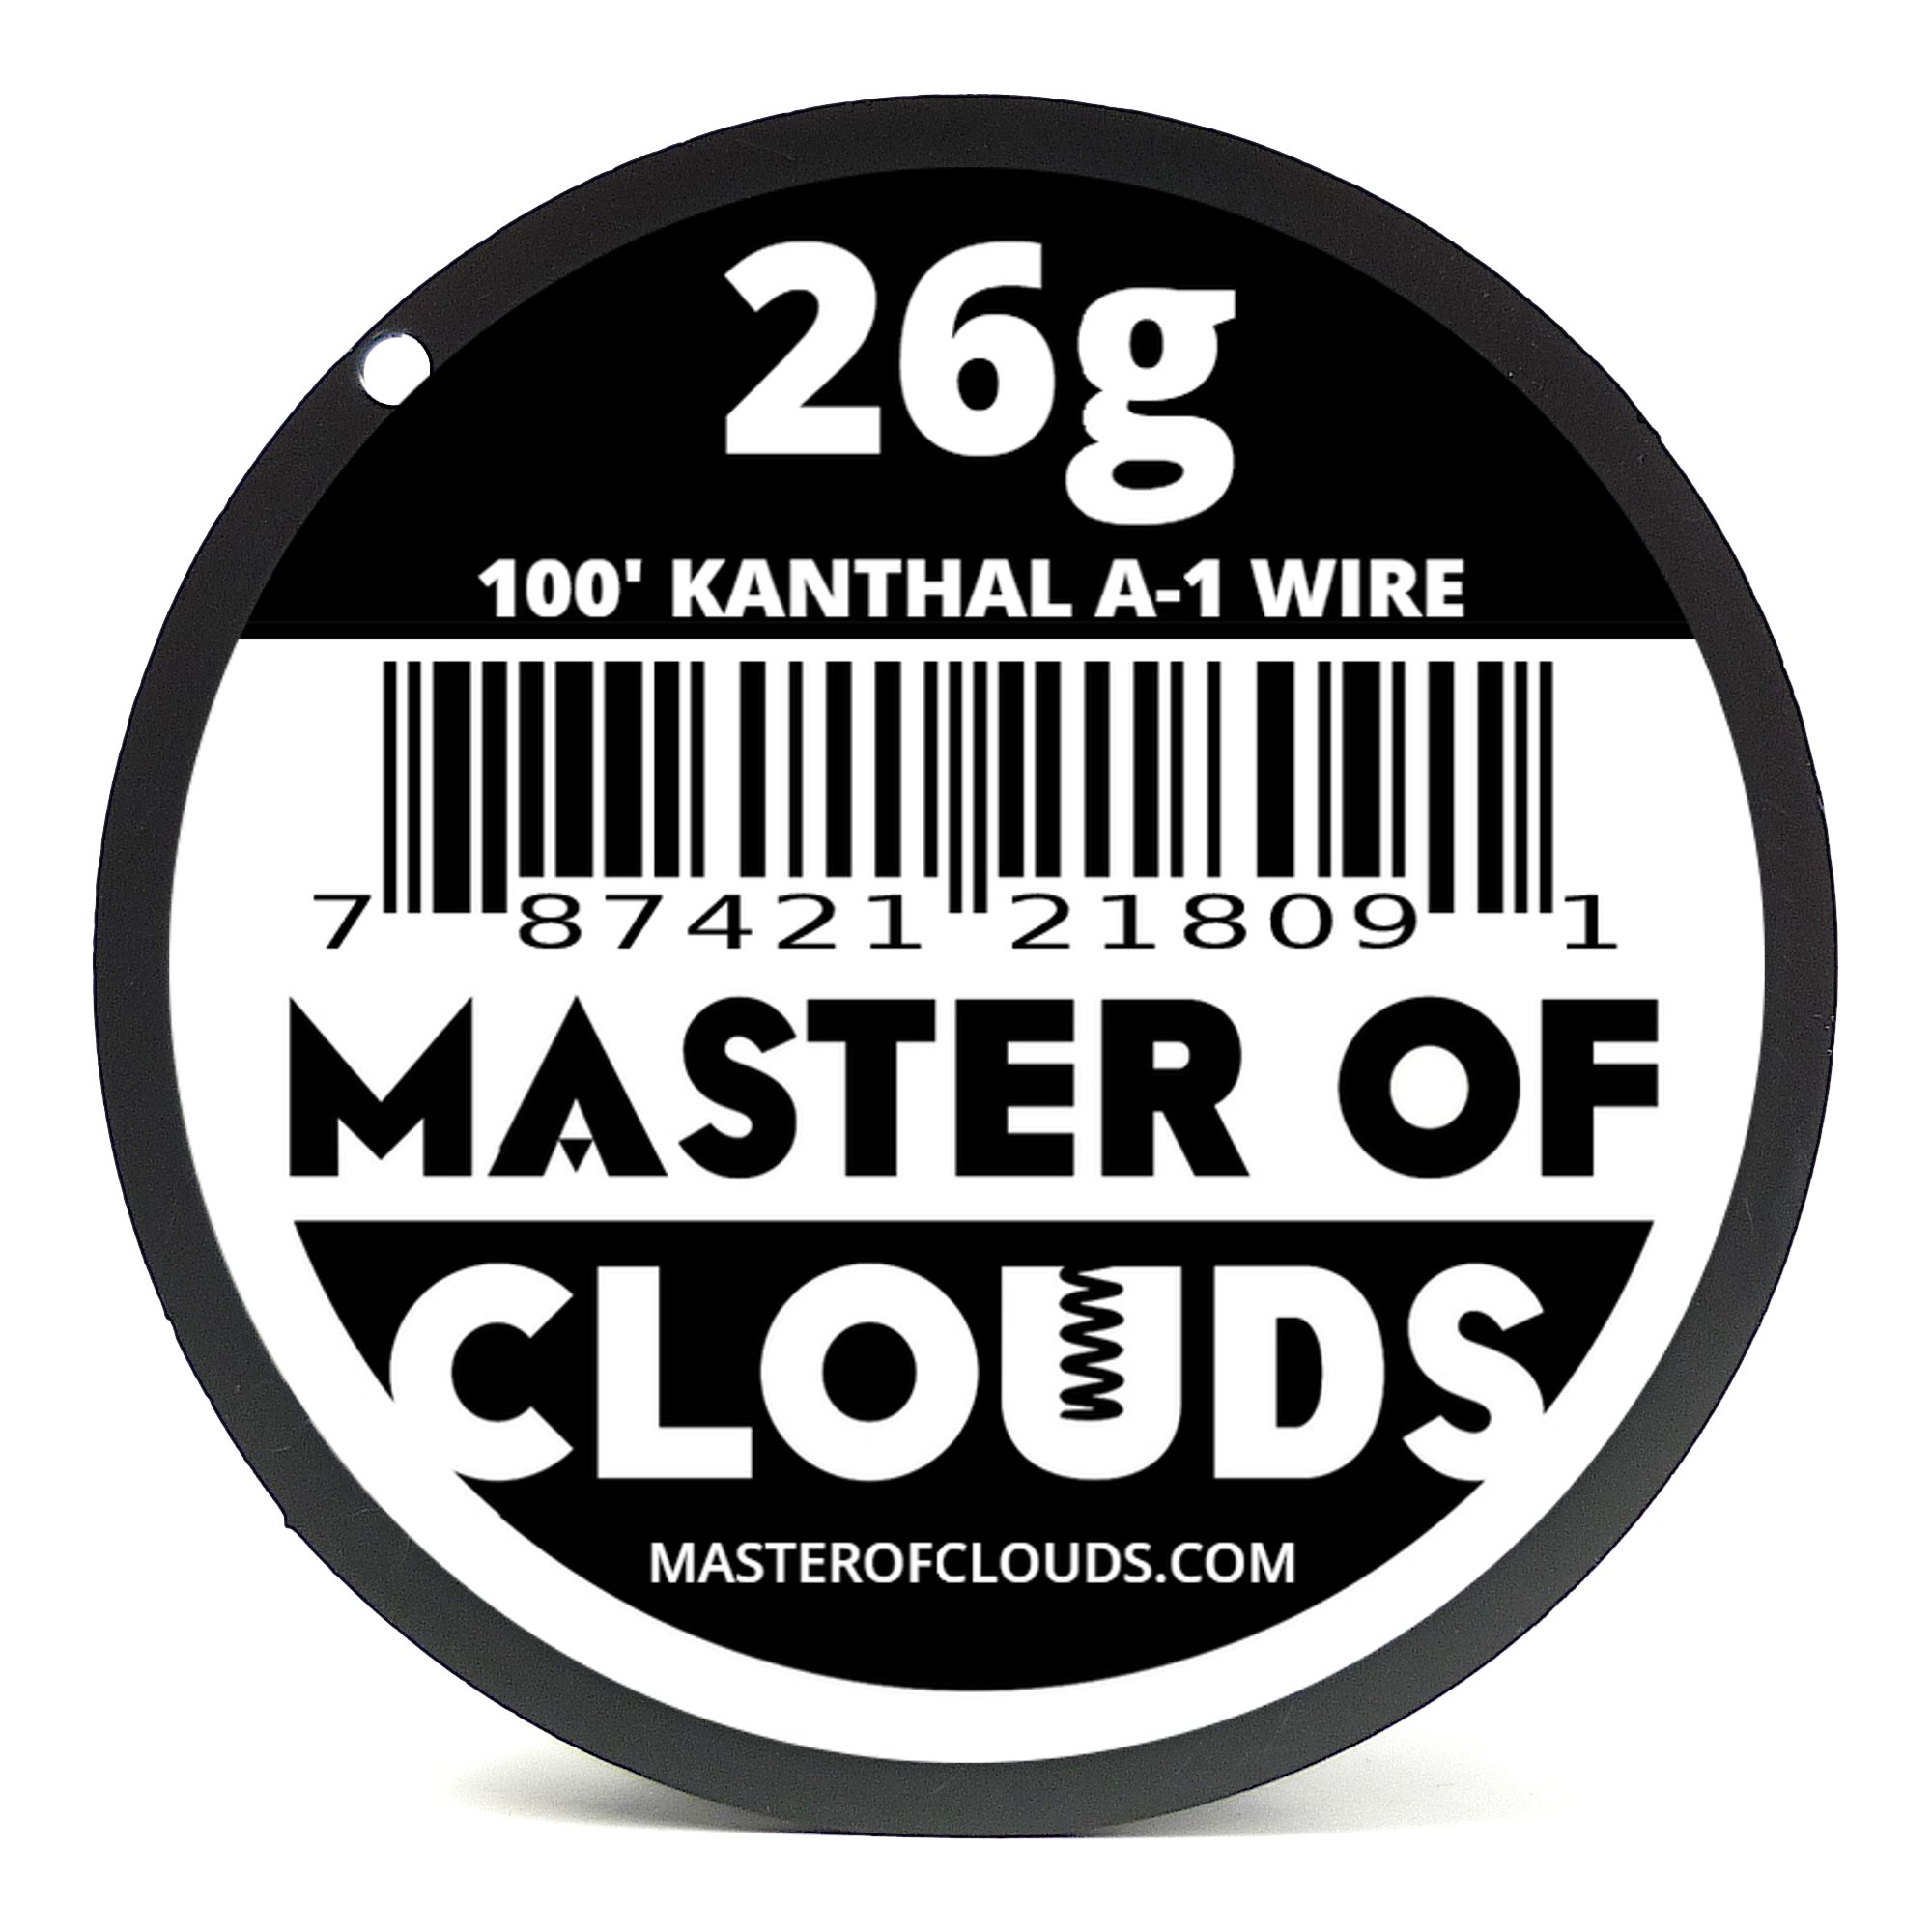 100ft. Kanthal A1 Resistance Wire 26 AWG Gauge 100\' Lengths ...